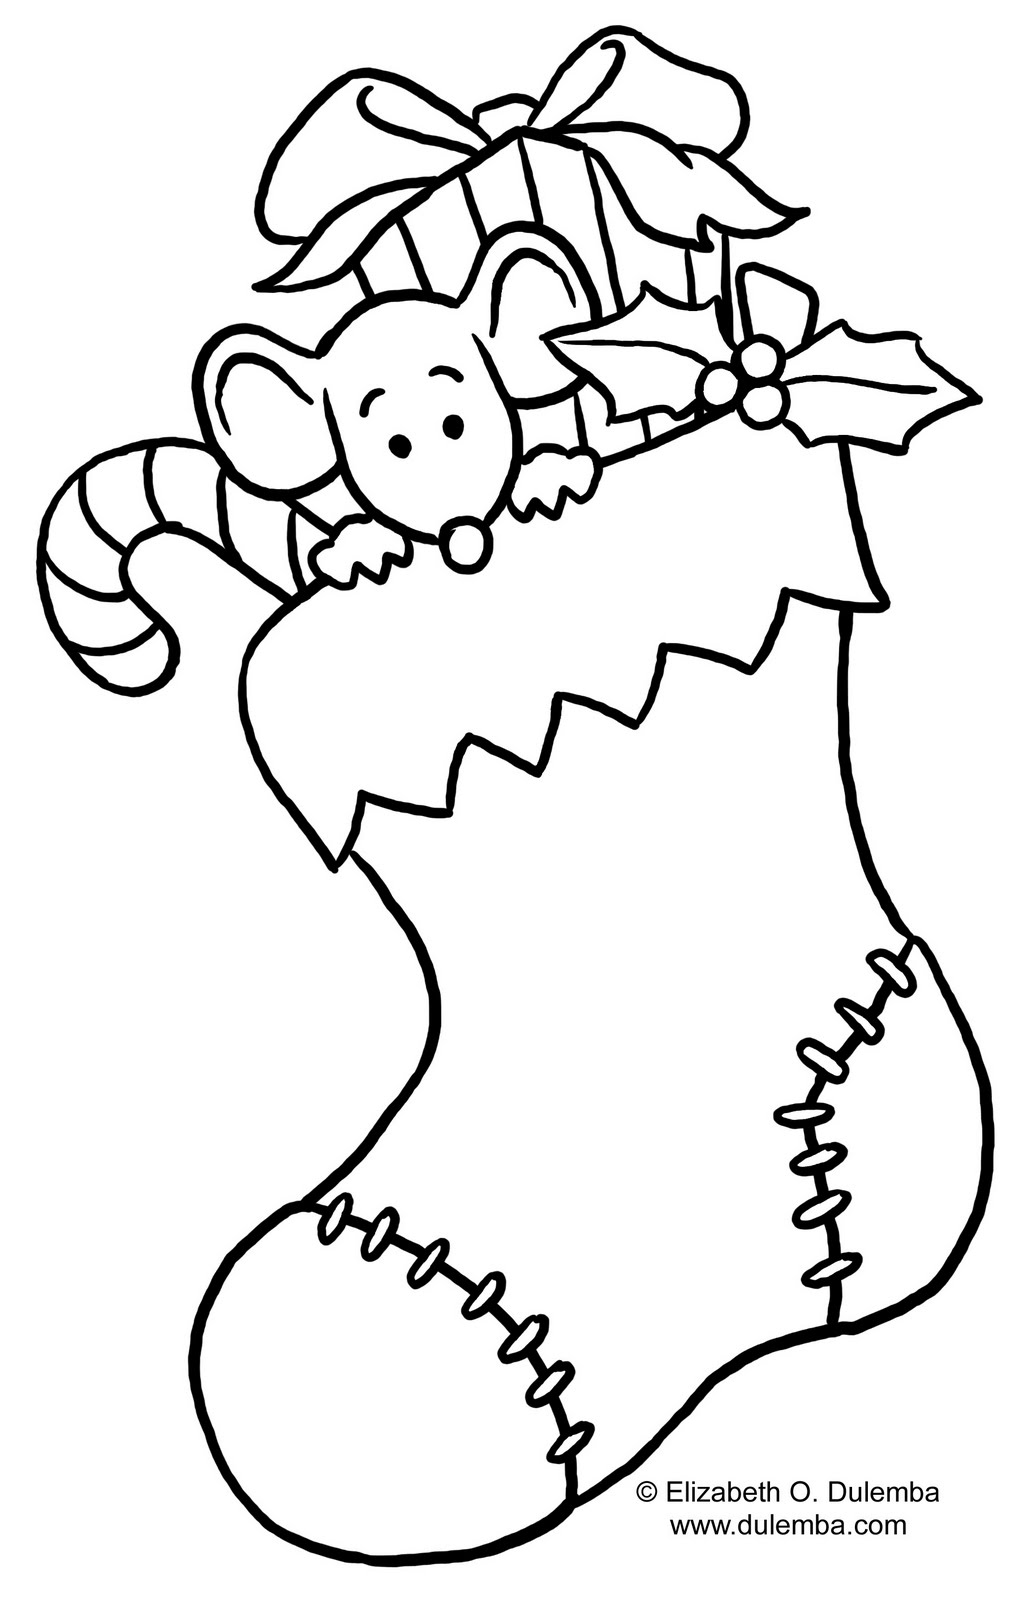 istmas coloring pages - photo#22